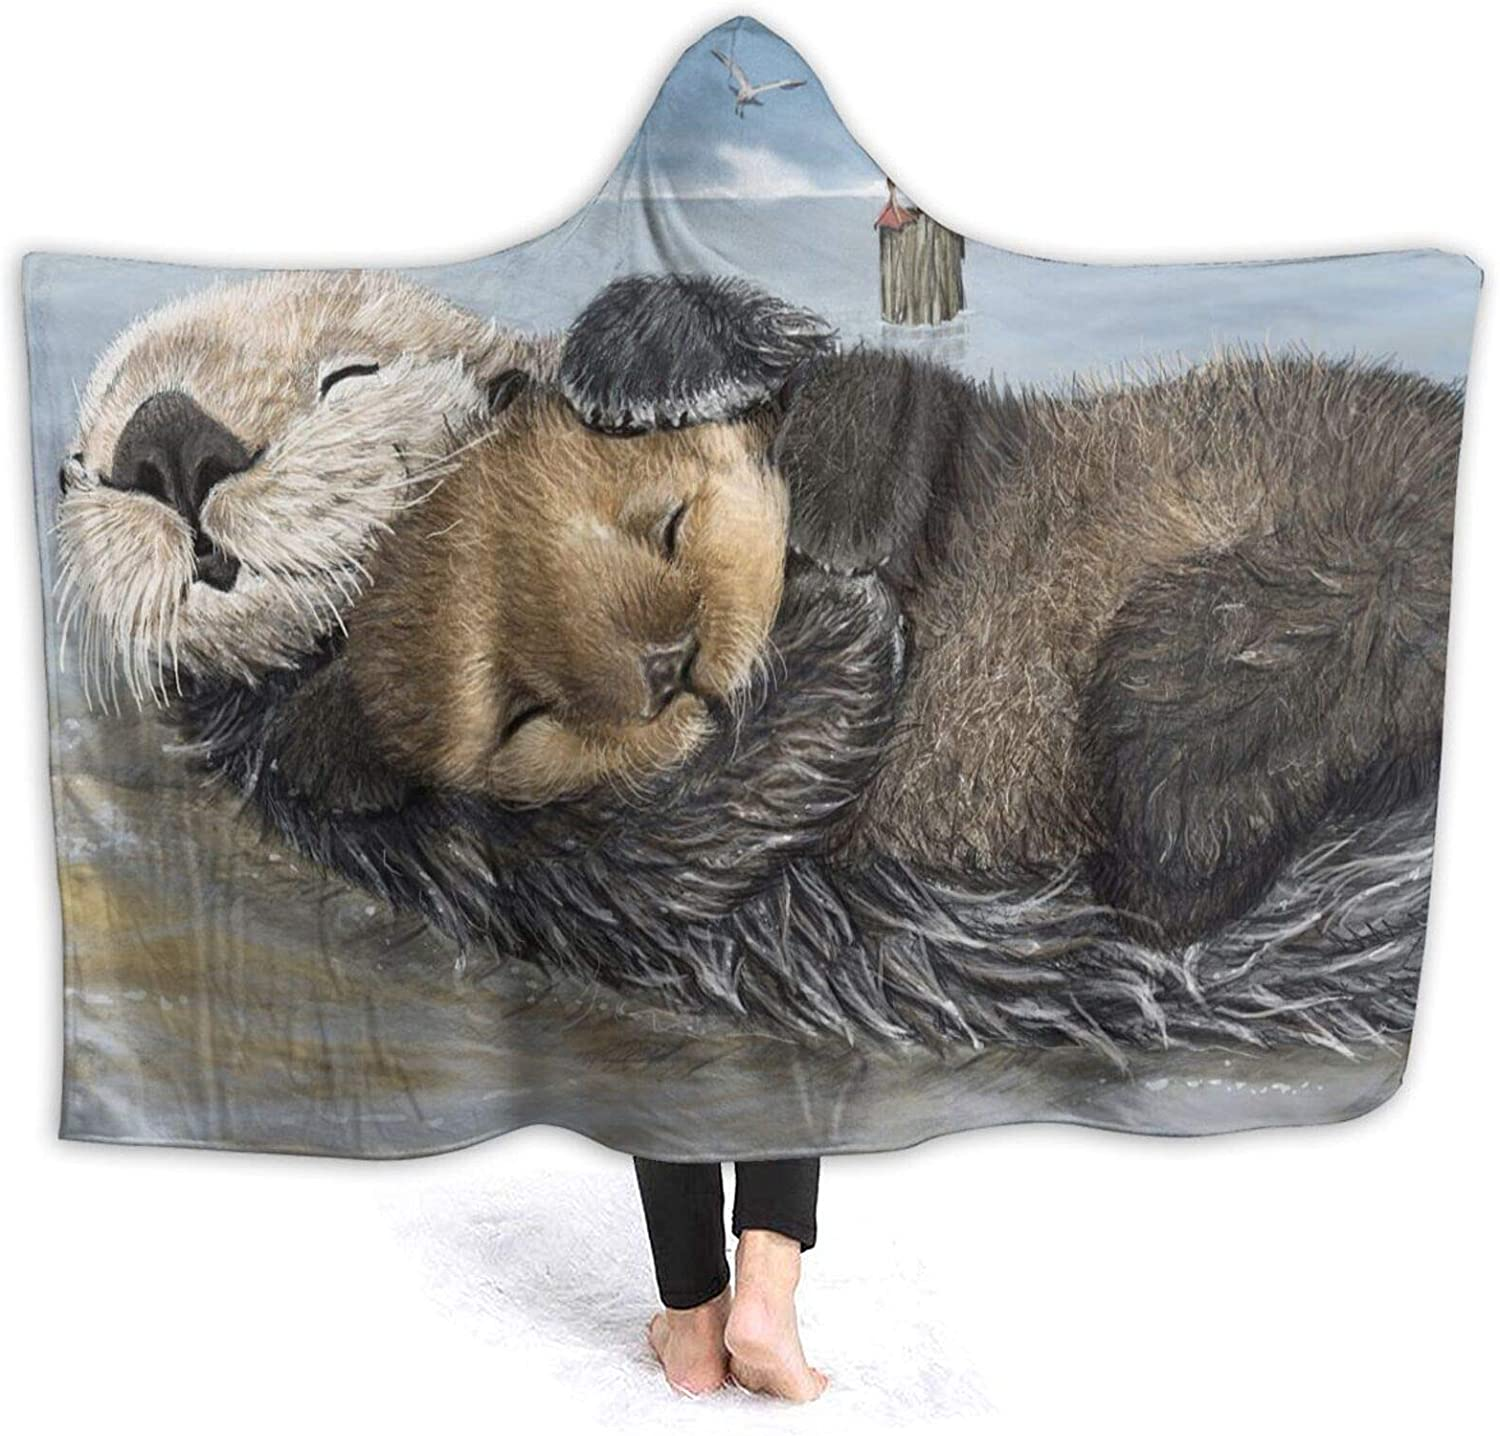 Cute Sea Sale price 5 ☆ very popular Otters Hooded Blanket Bl Throw Air Conditioning